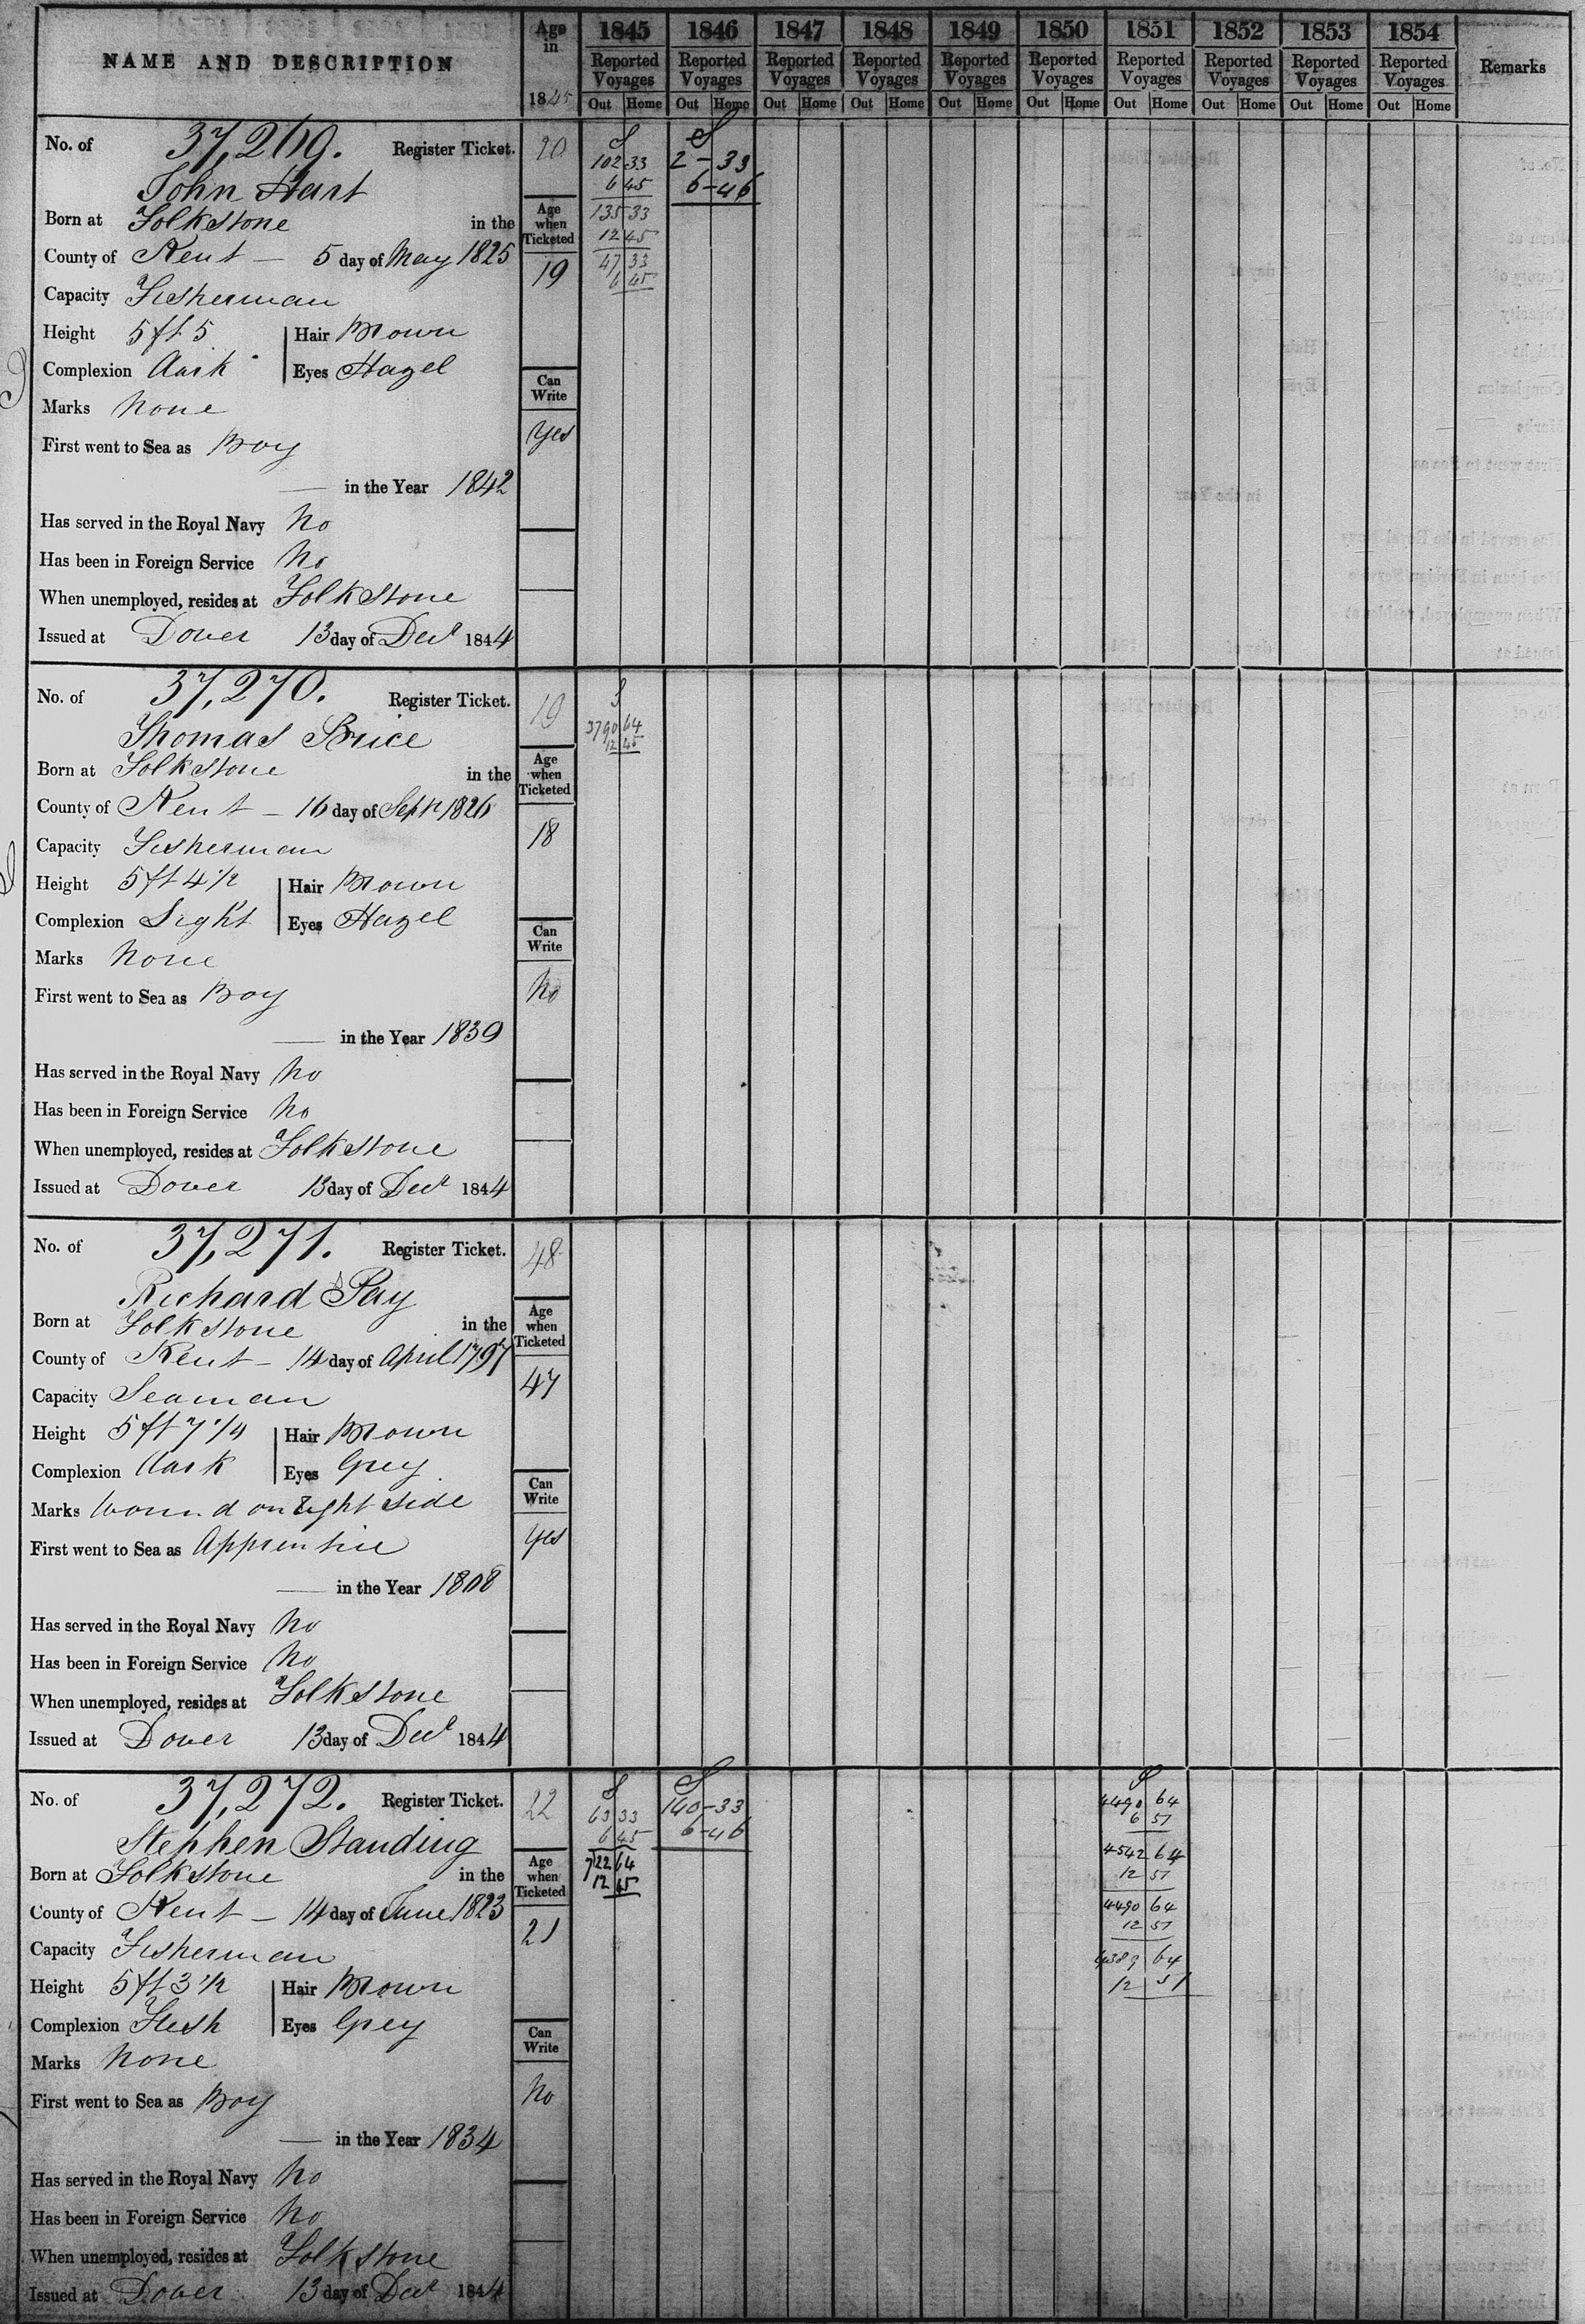 Registration of Merchant Seaman's Ticket